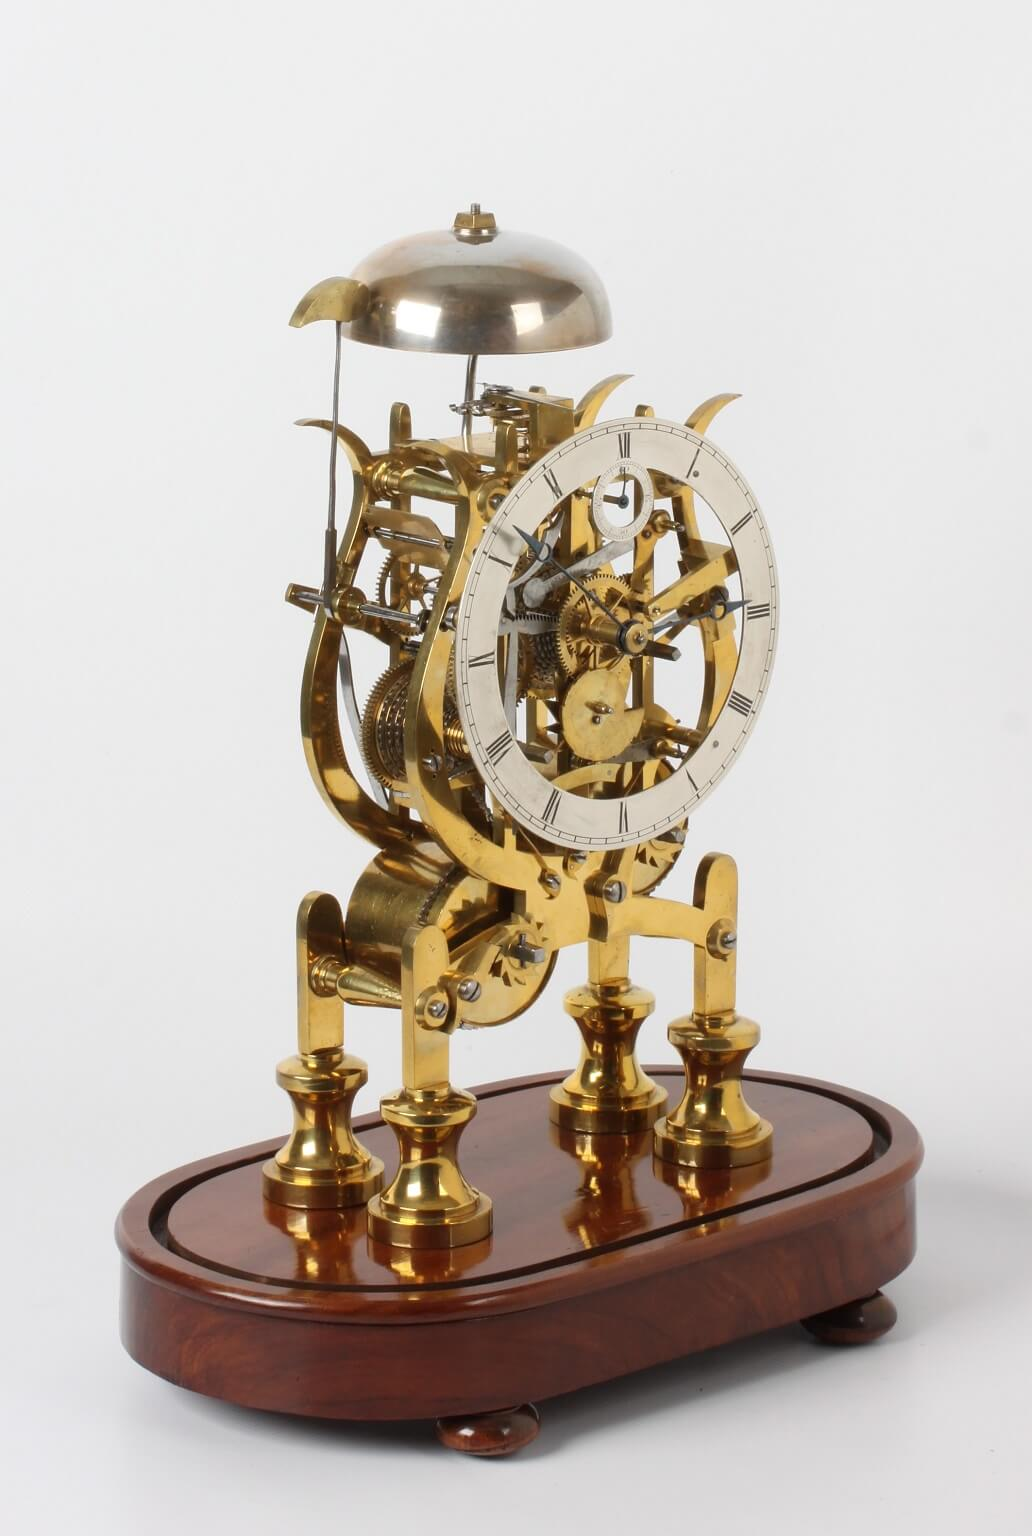 English brass skeleton clock striking balance Dent 1840